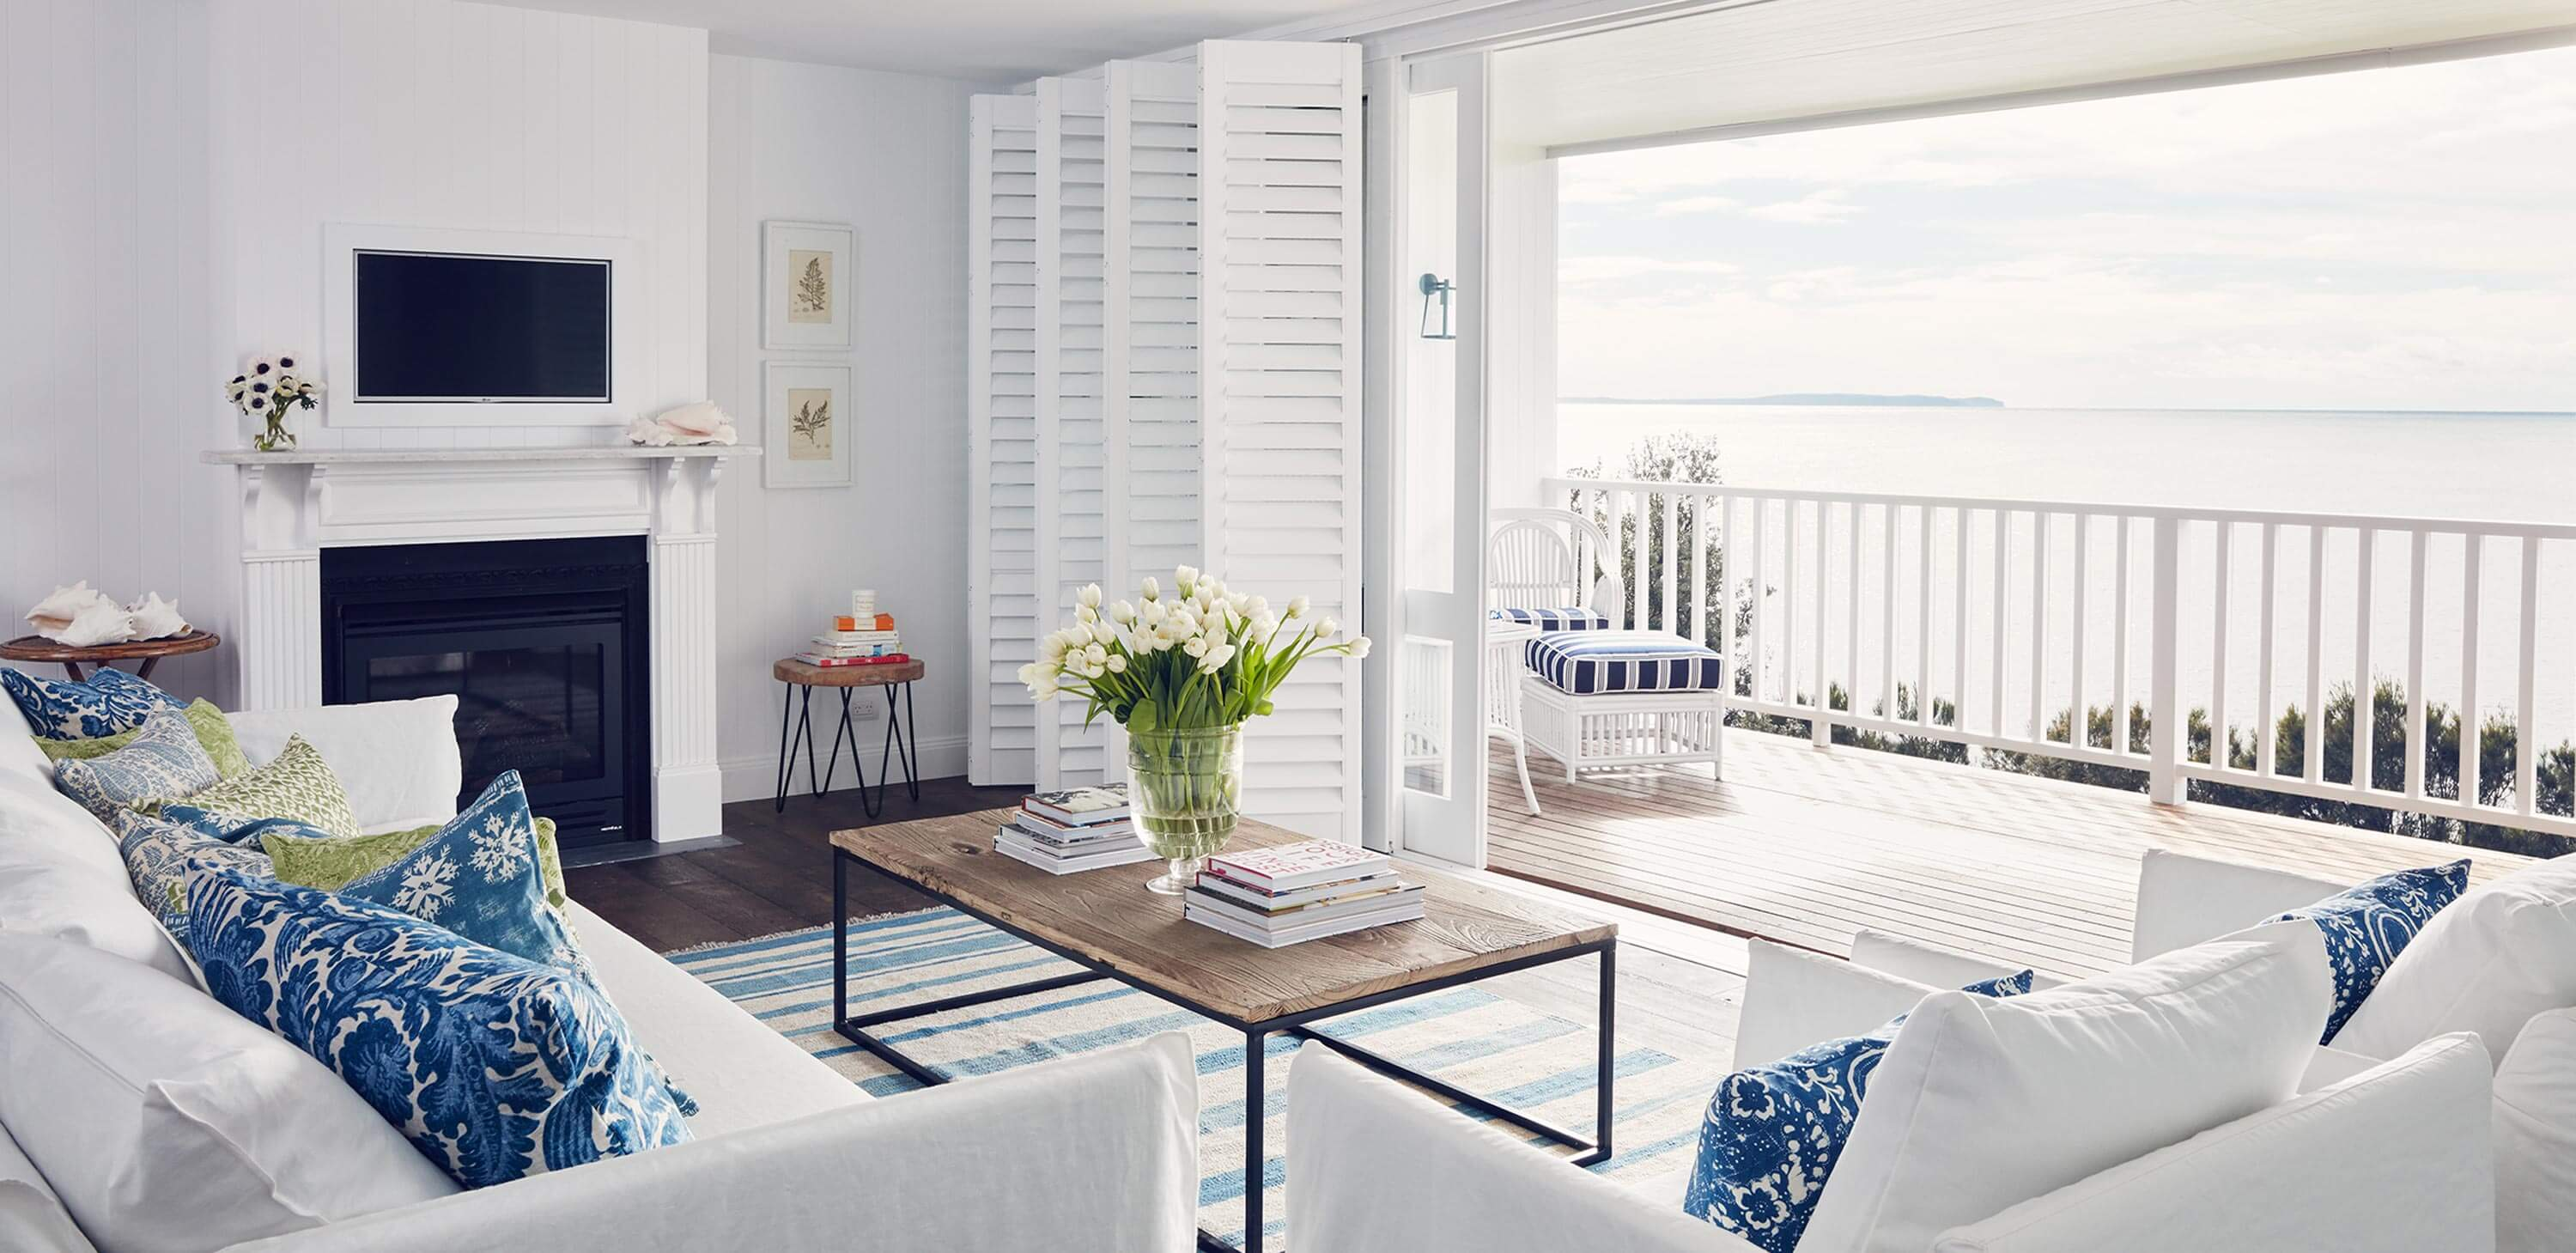 Bannisters by the Sea, Collette Dinnigan penthouse